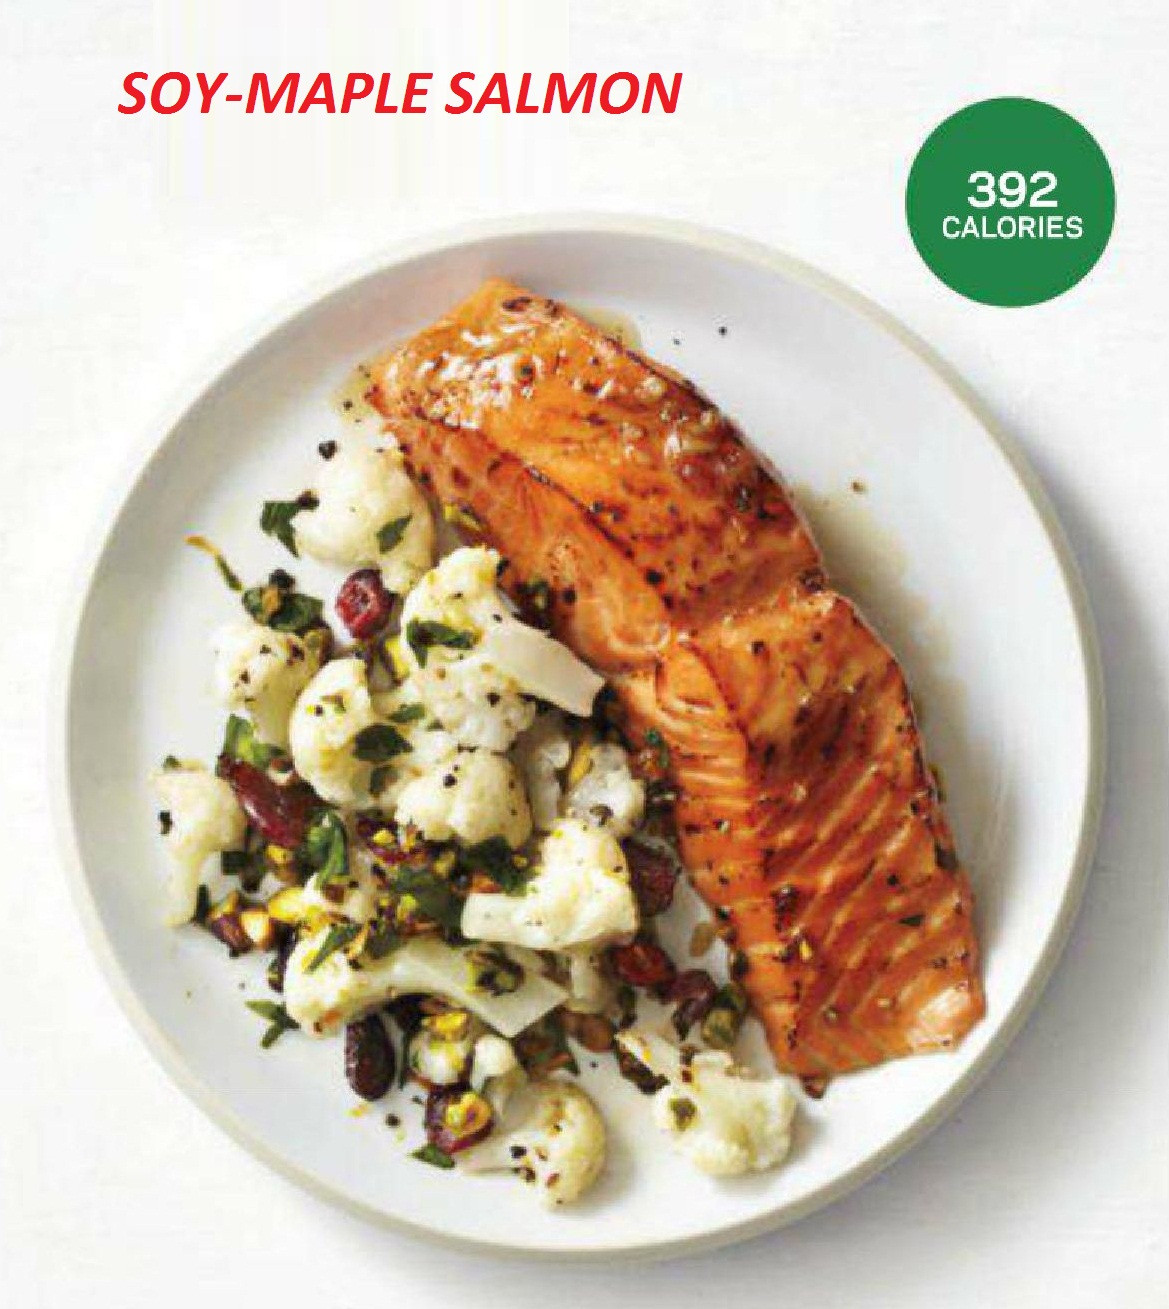 Healthy Recipes With Fish  SOY MAPLE SALMON Healthy Fish Recipe 392 Calories How